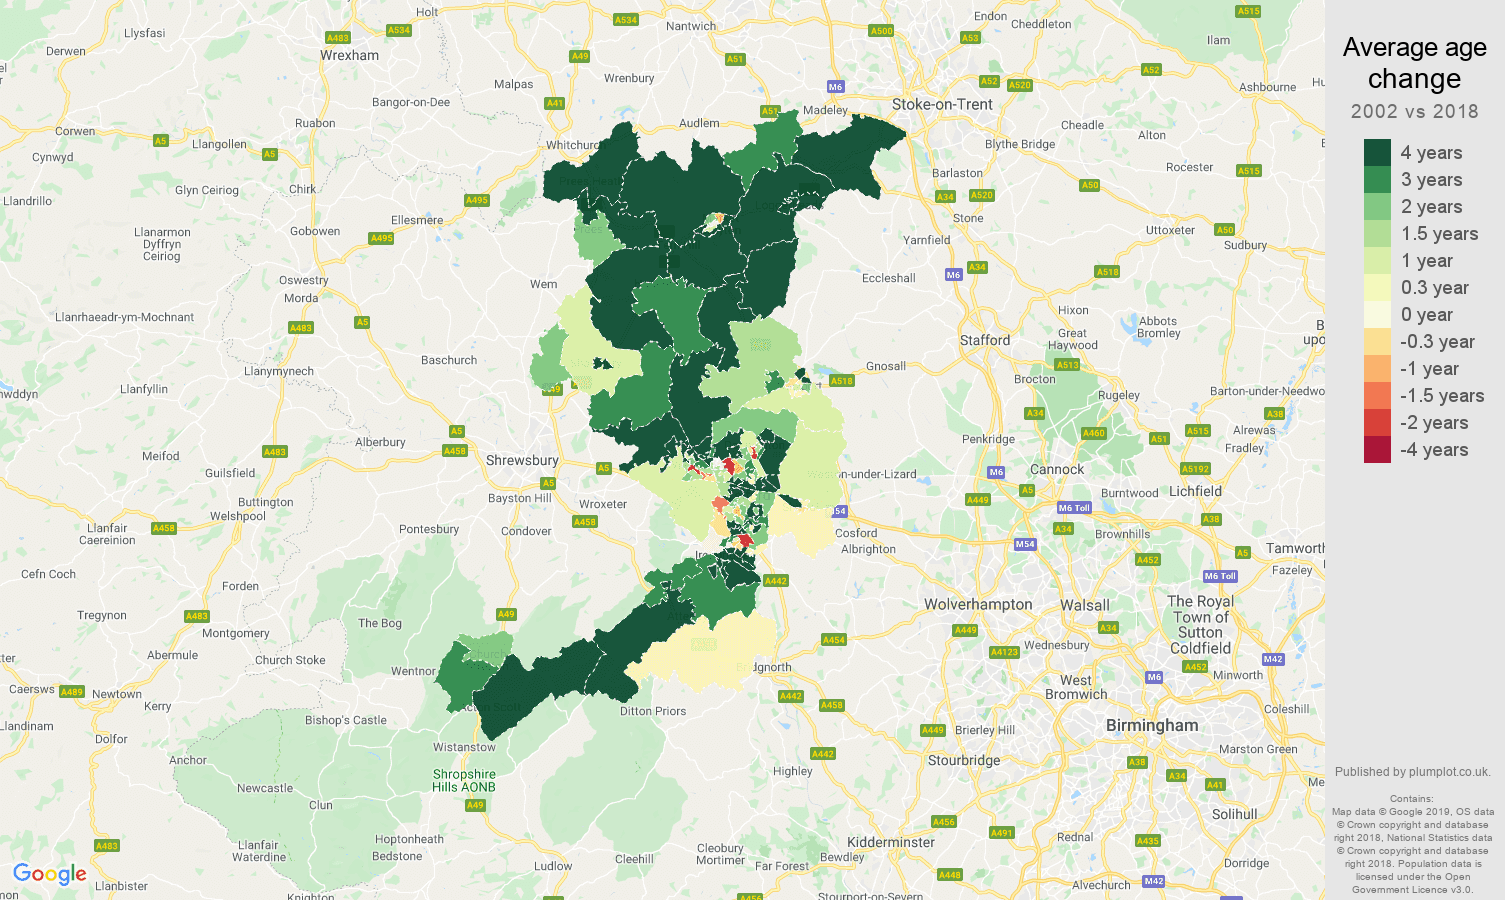 Telford average age change map